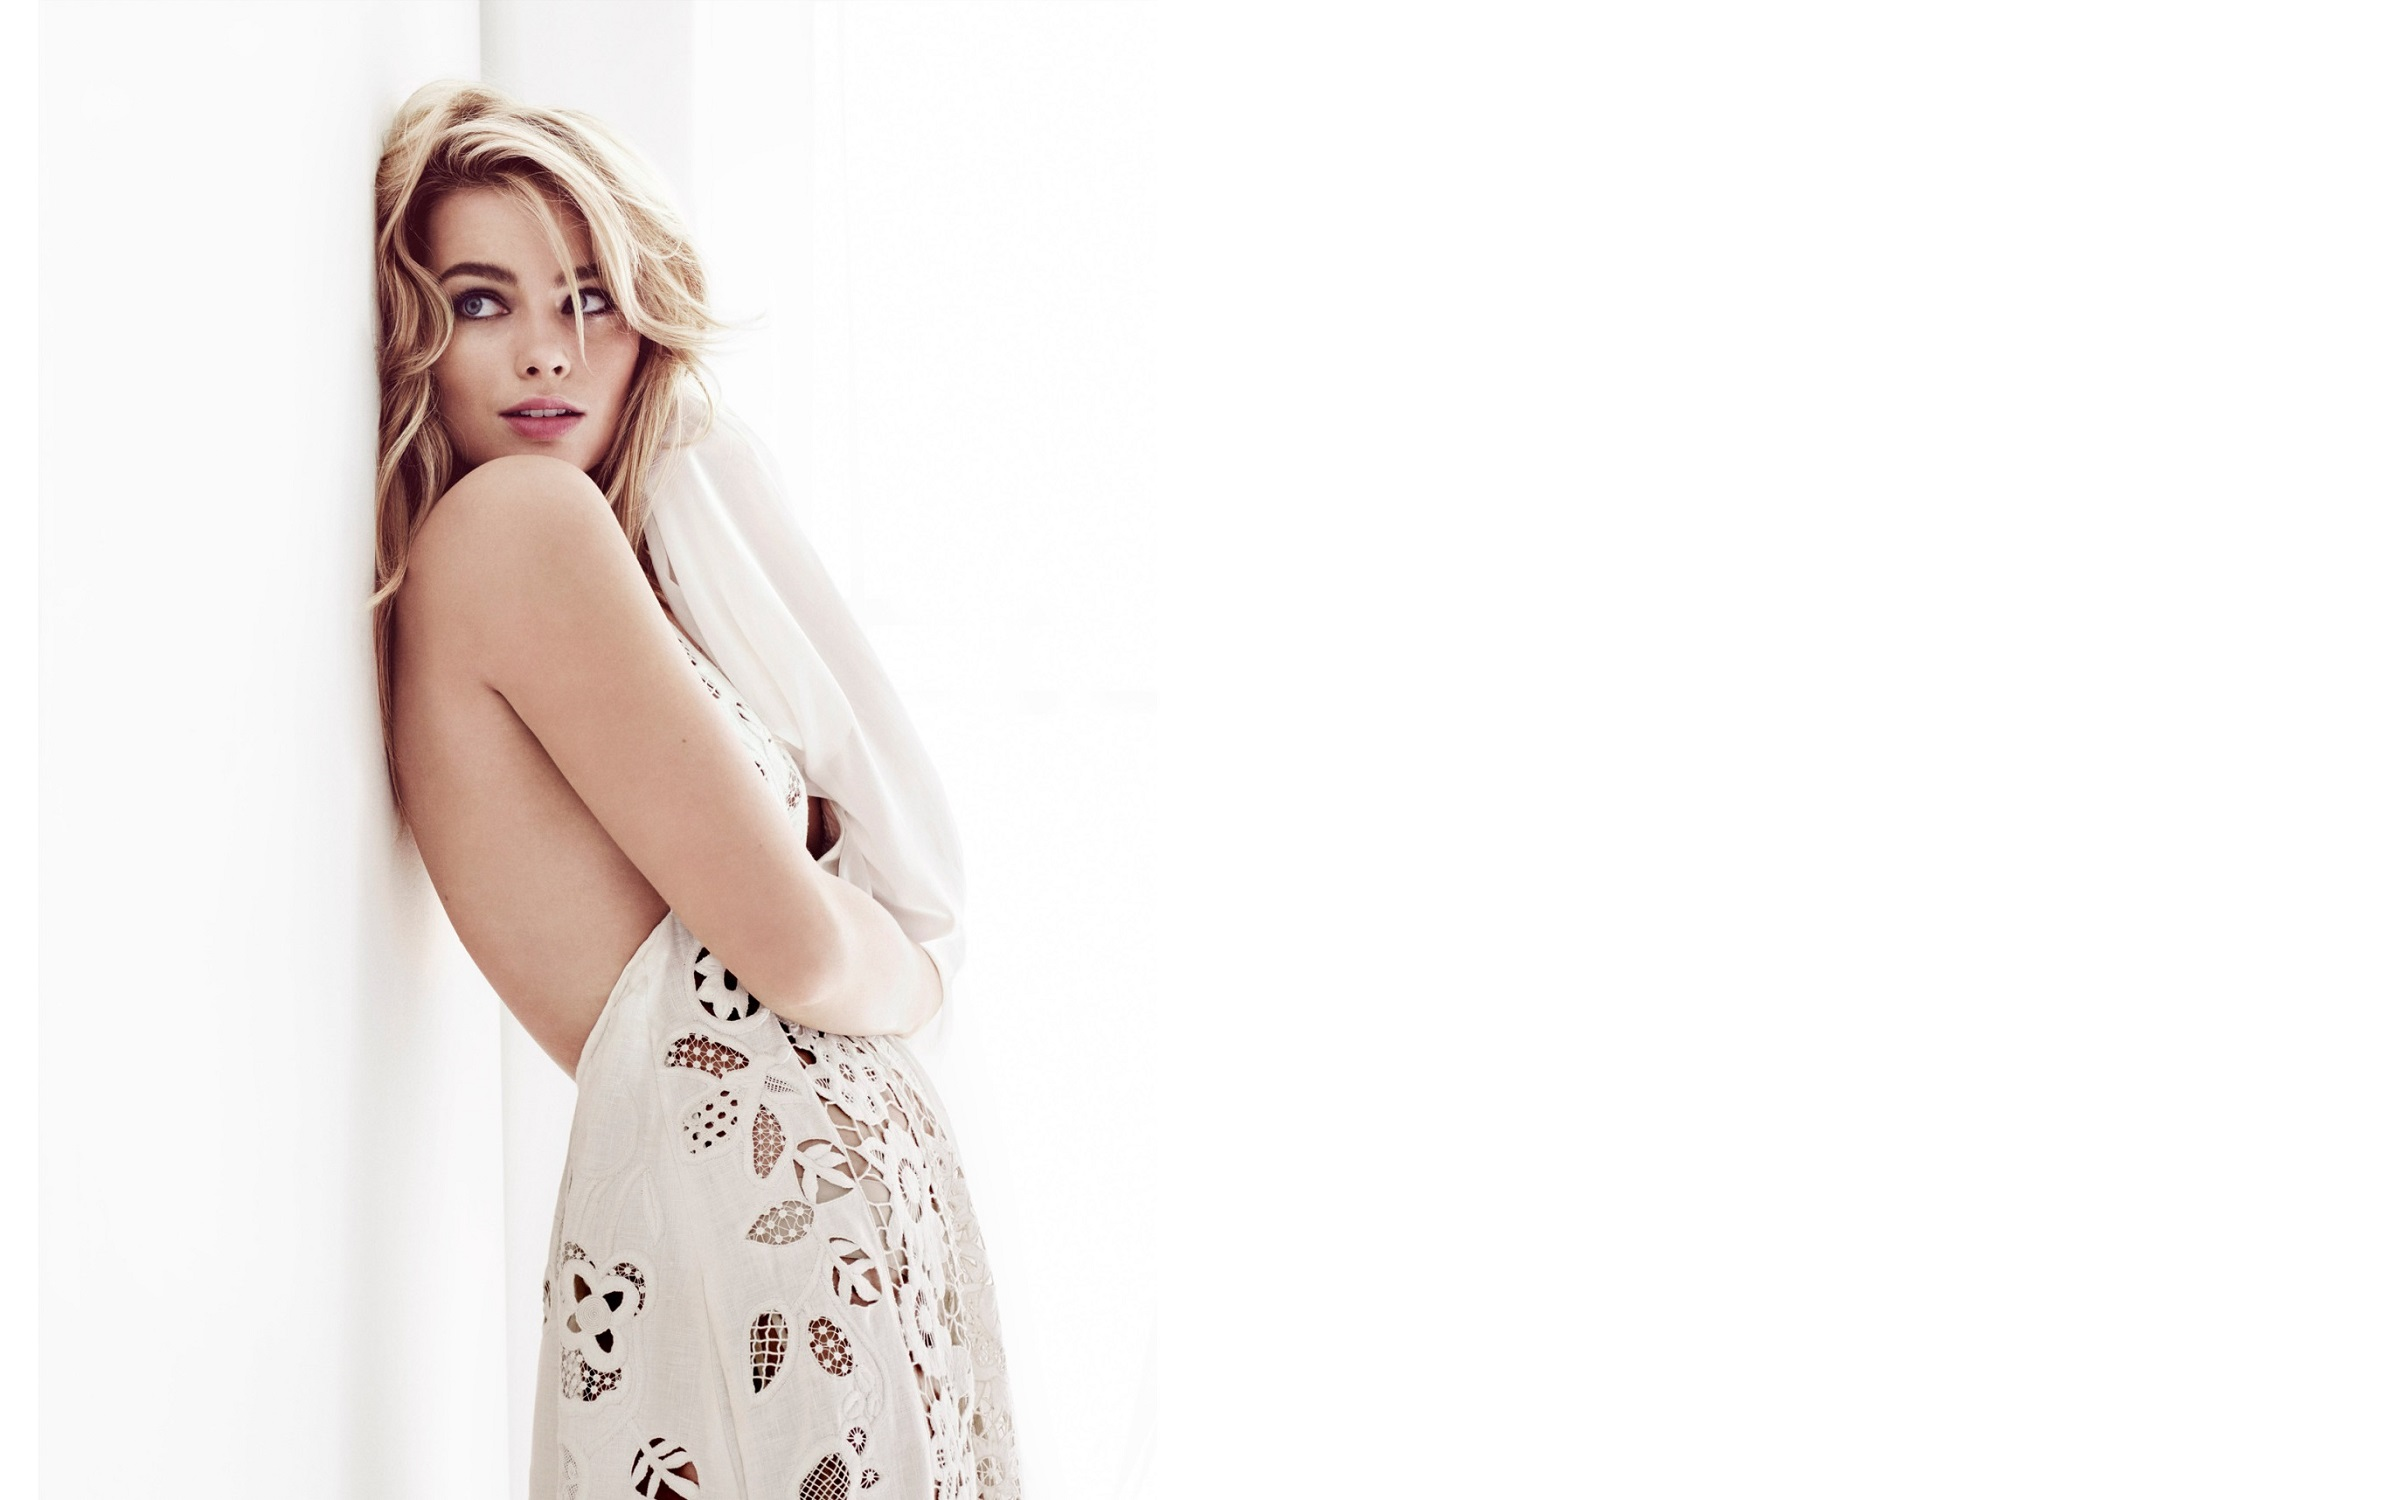 688d0dbb4b Margot Robbie Wallpapers